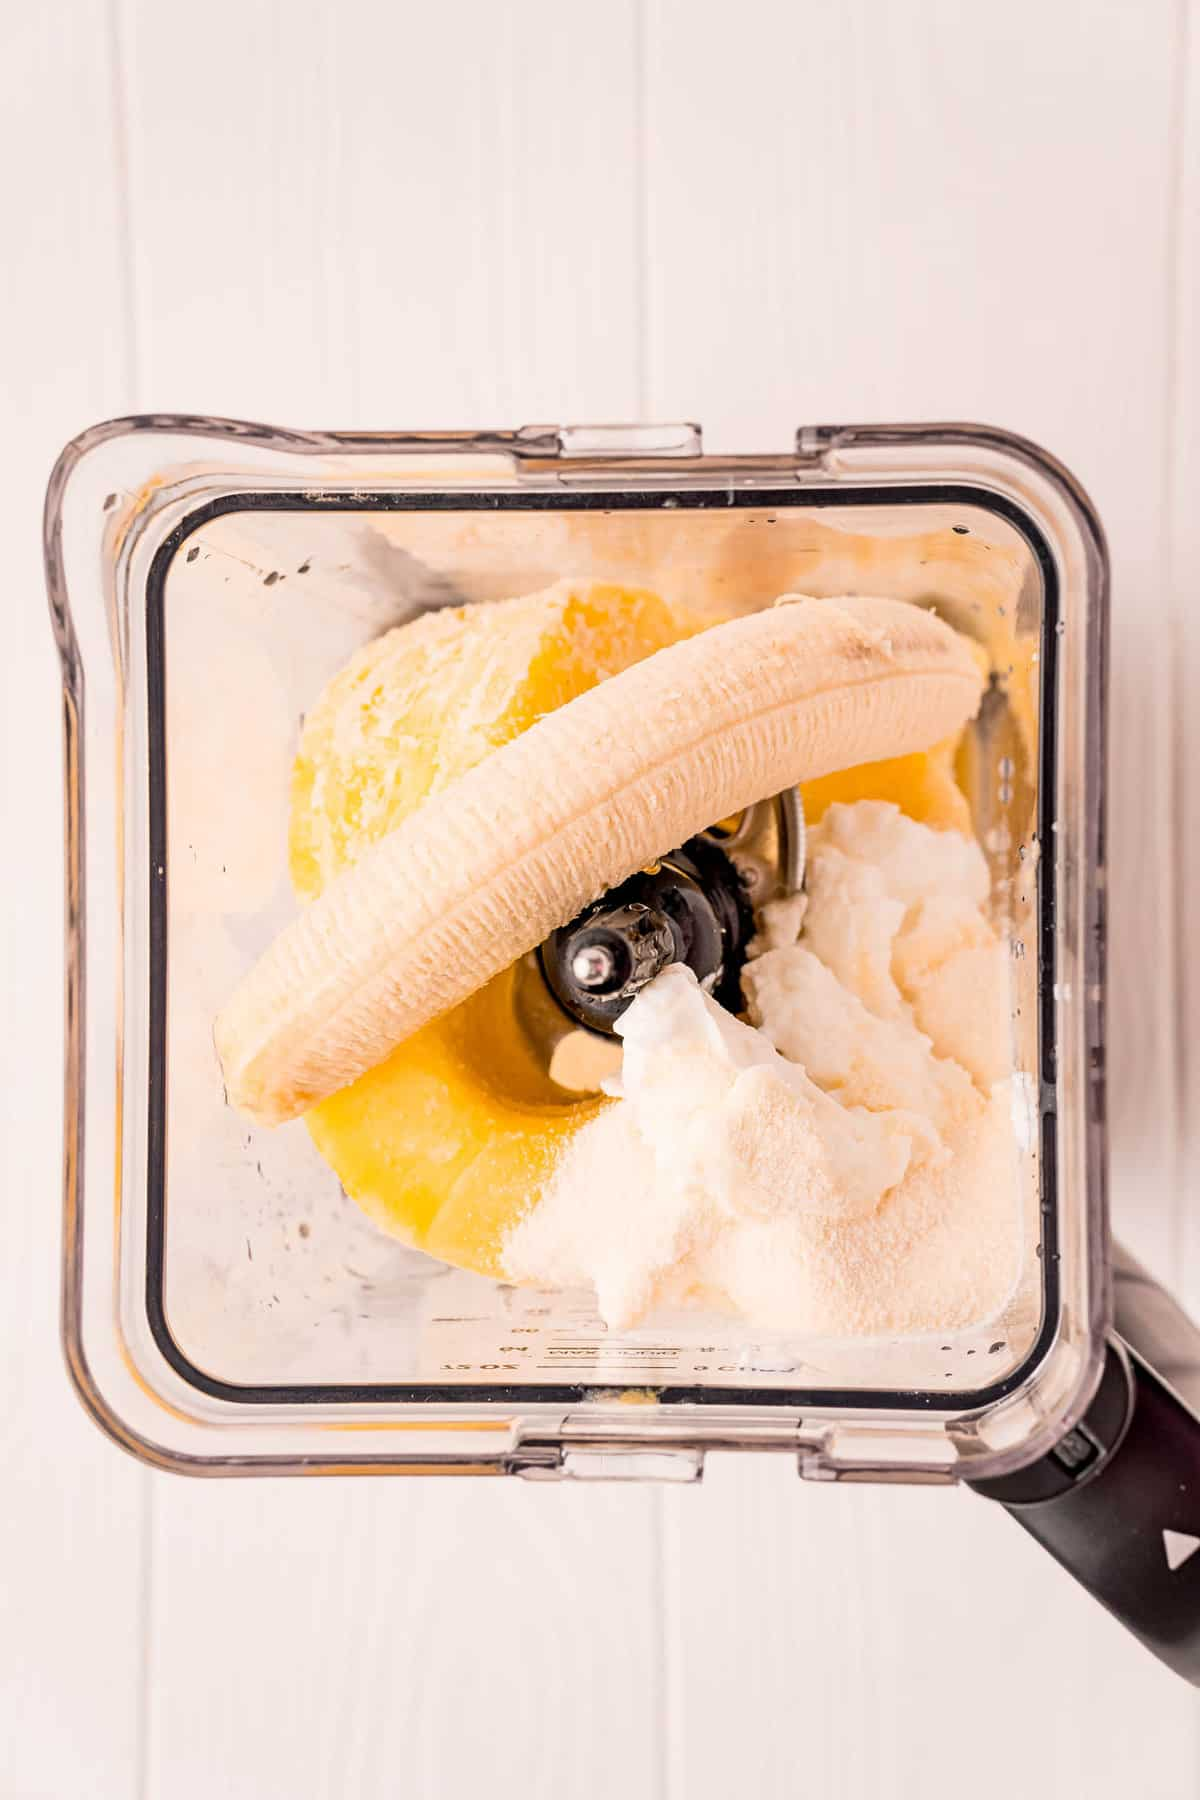 Overhead view of blender with banana, yogurt, and more.